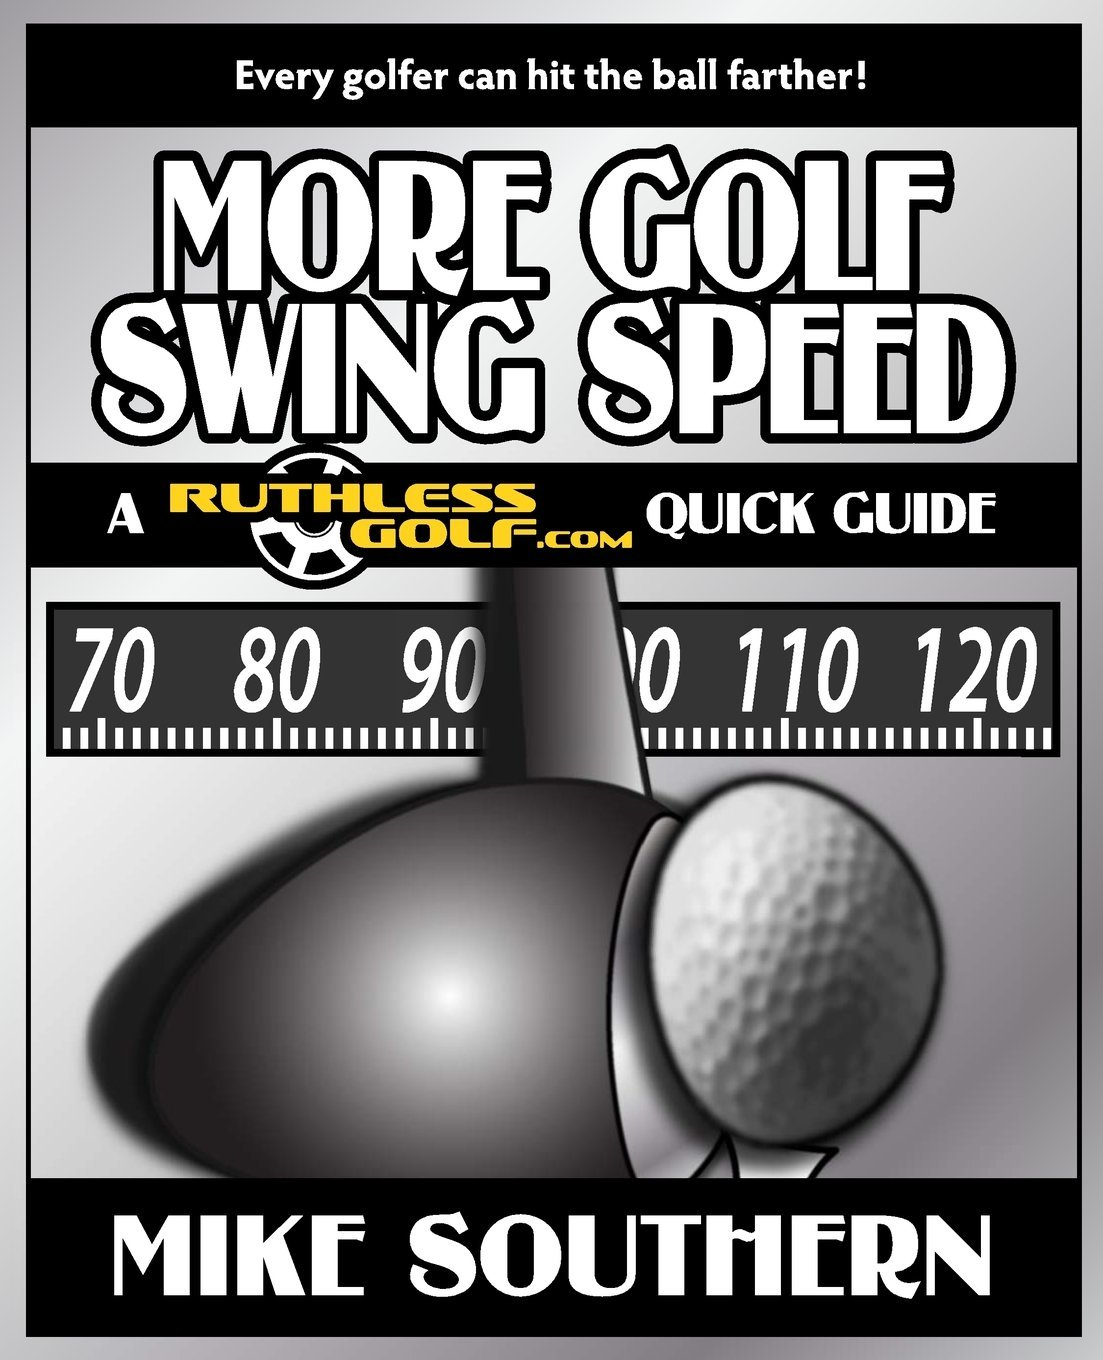 Ruthless Golf Quick Guide